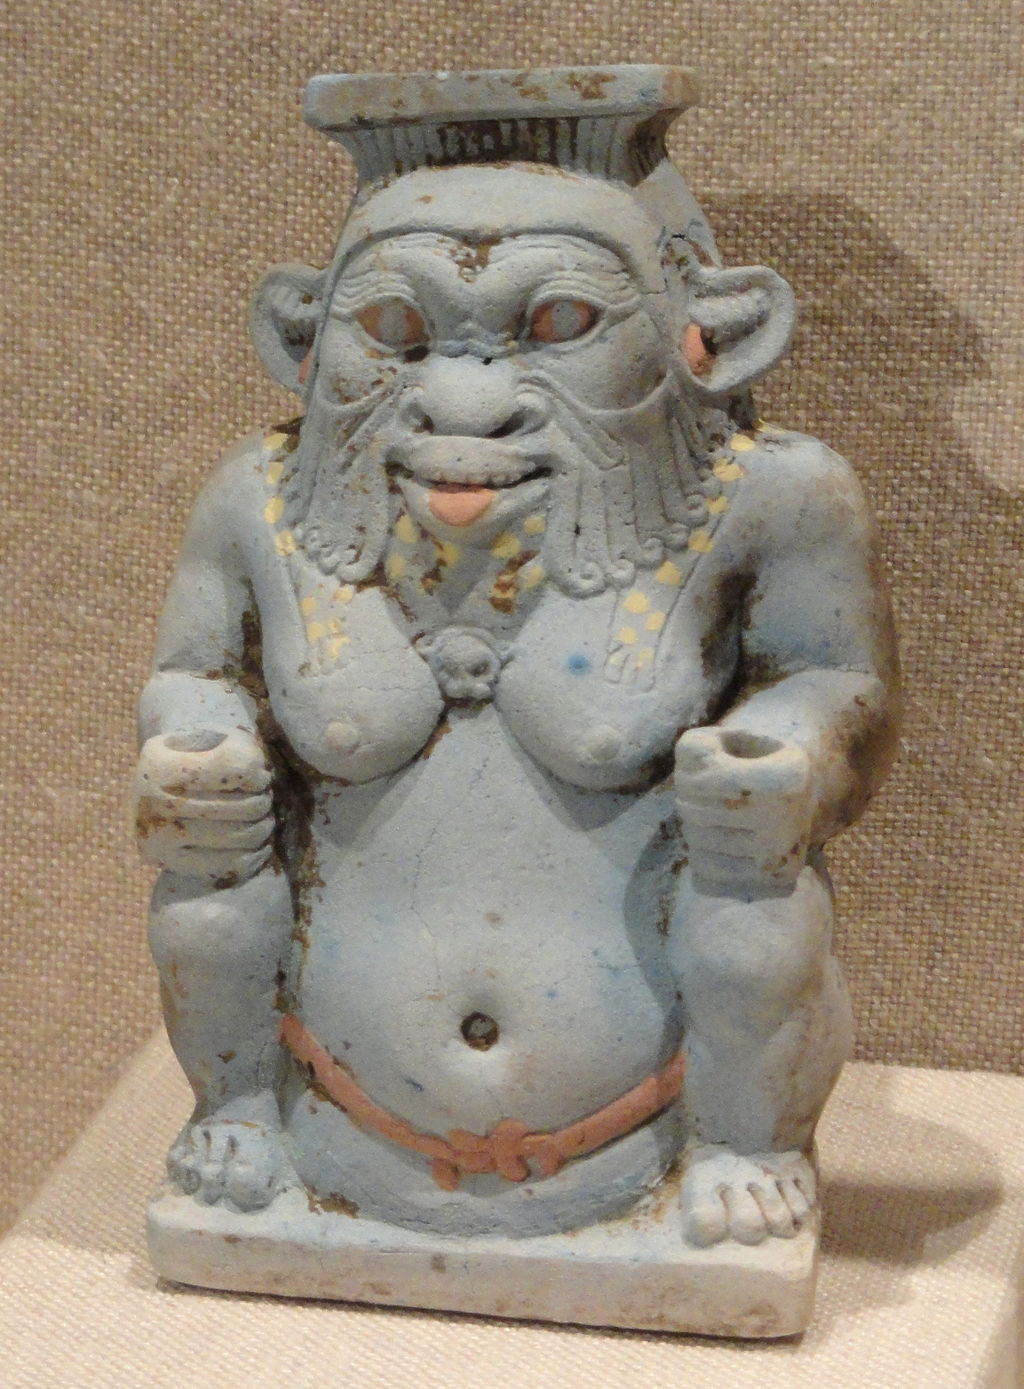 A cosmetic jar shaped like Bes. Both sexes wore makeup, in part to protect from the sun and insects, so the connection to a protector god makes sense